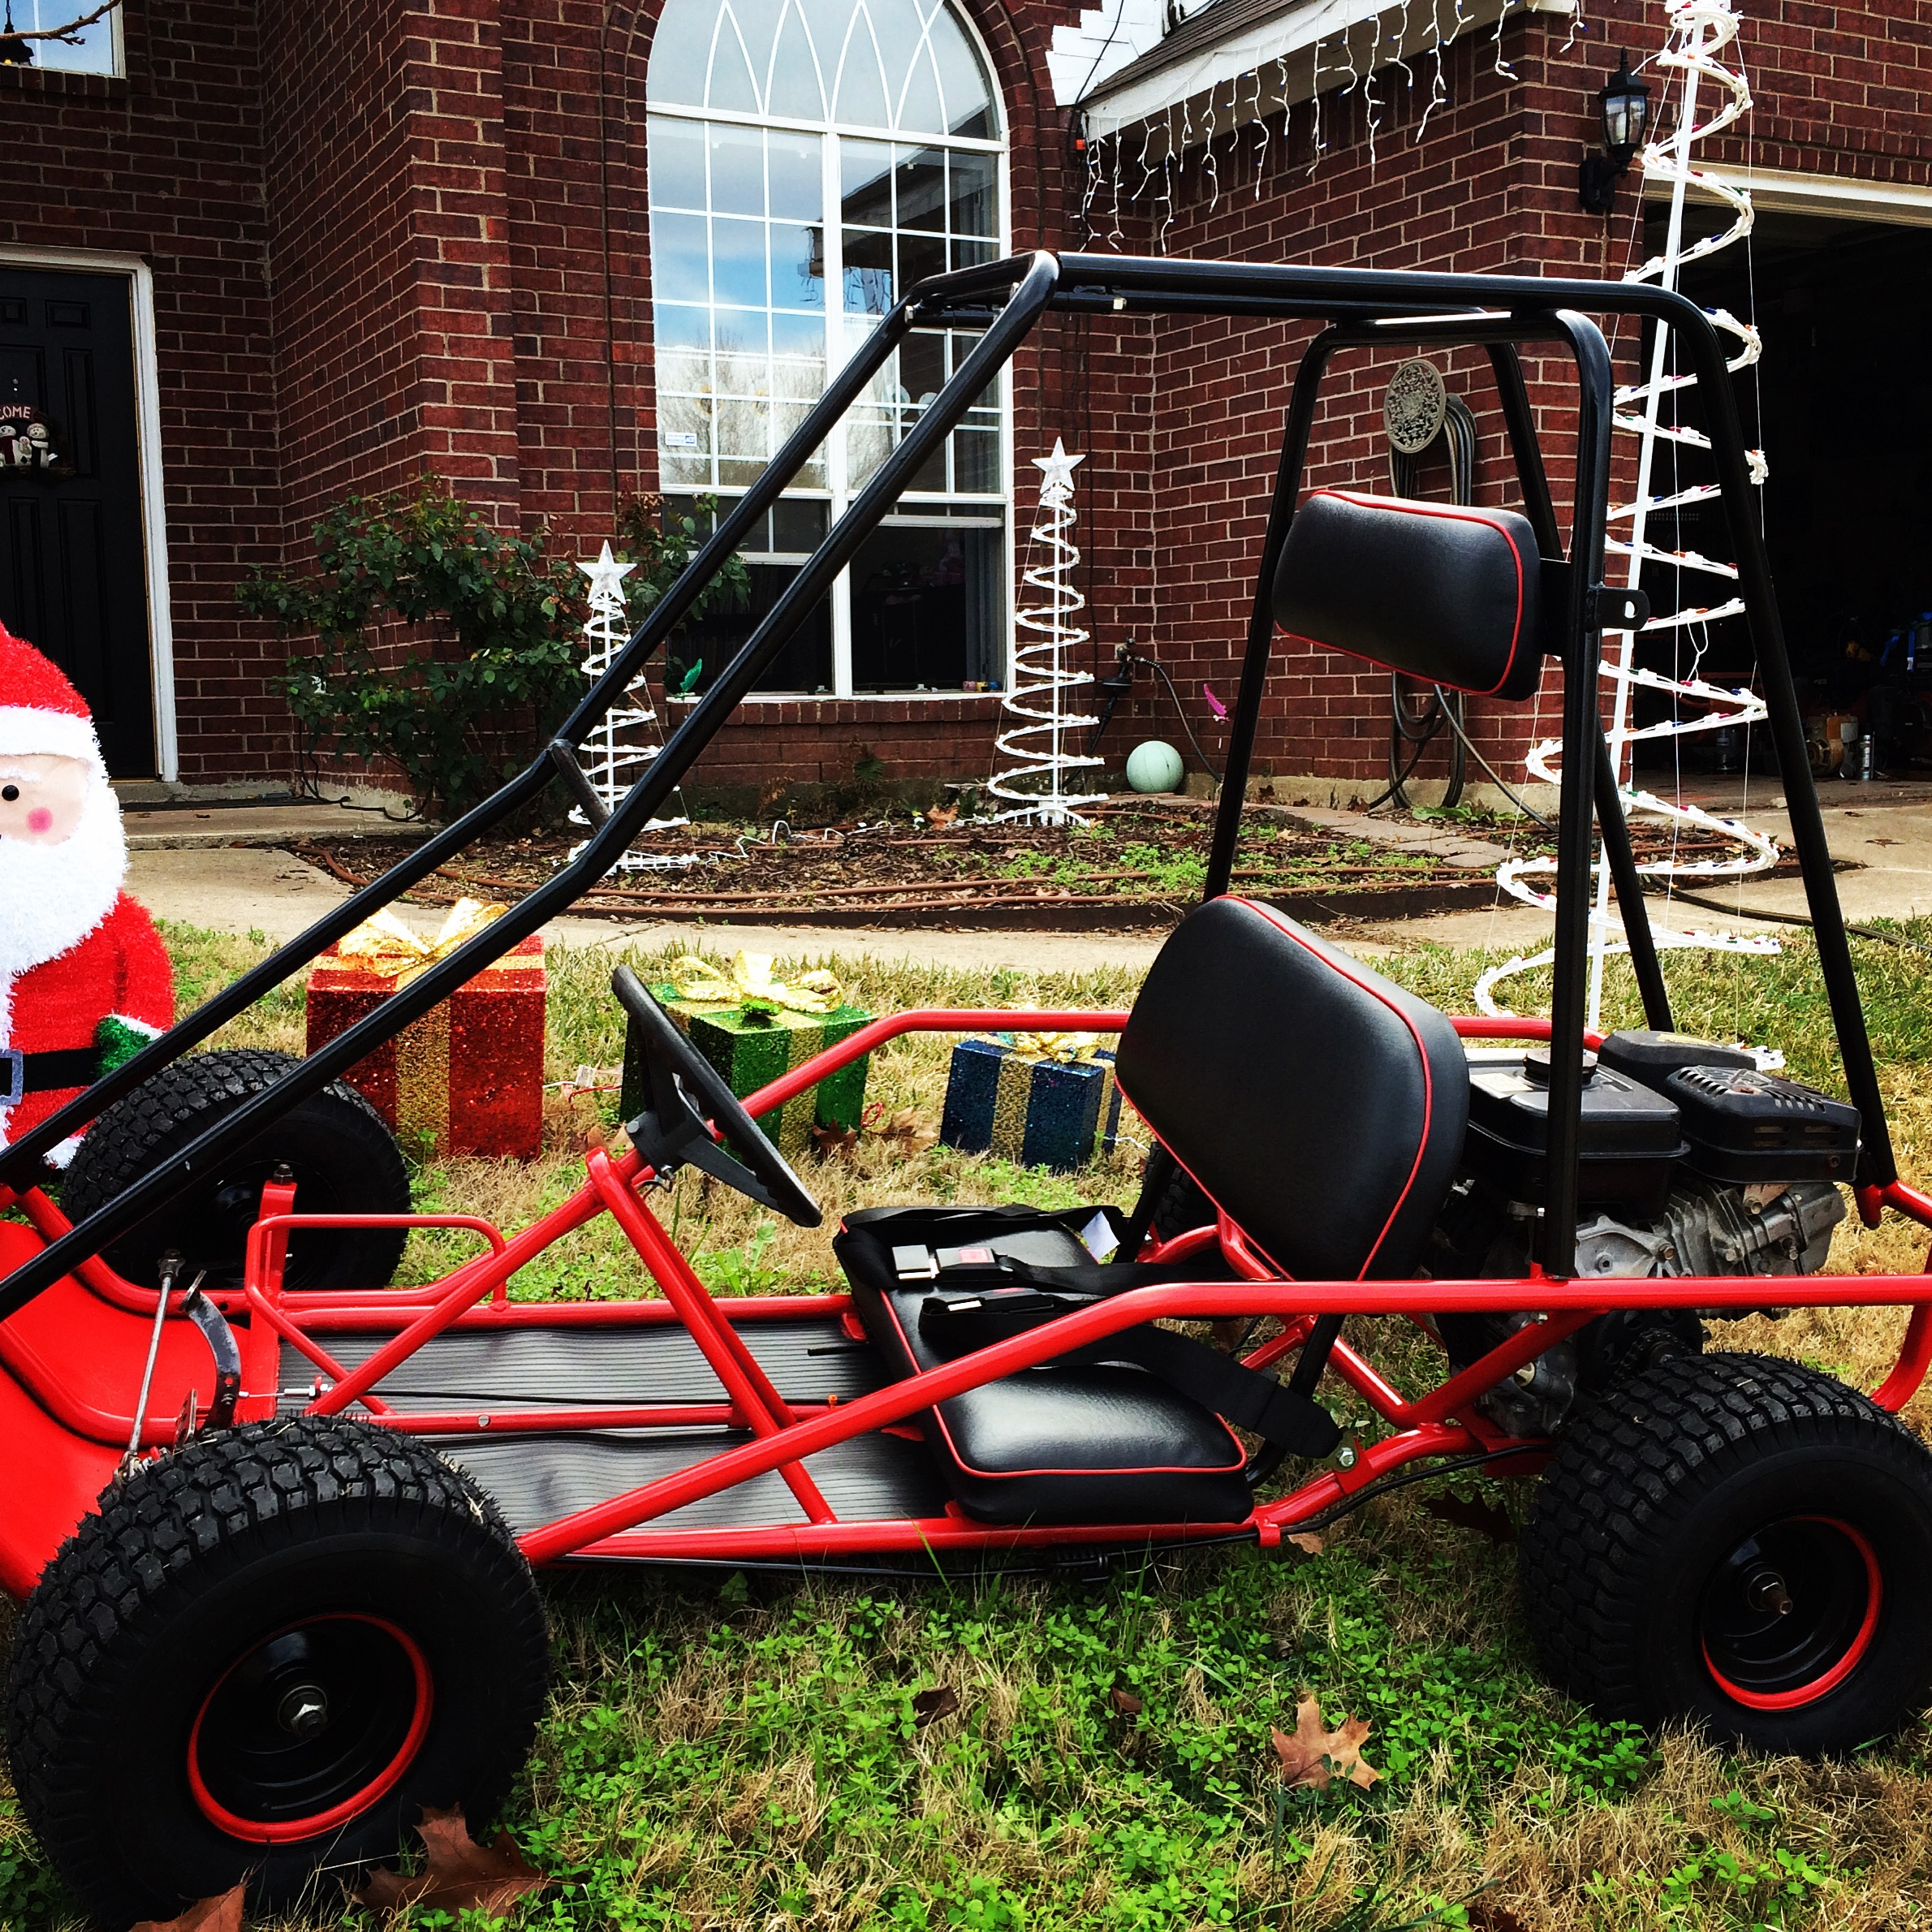 Three 2 Seat Manco Go Karts for Kids Just in Time for Christmas ...